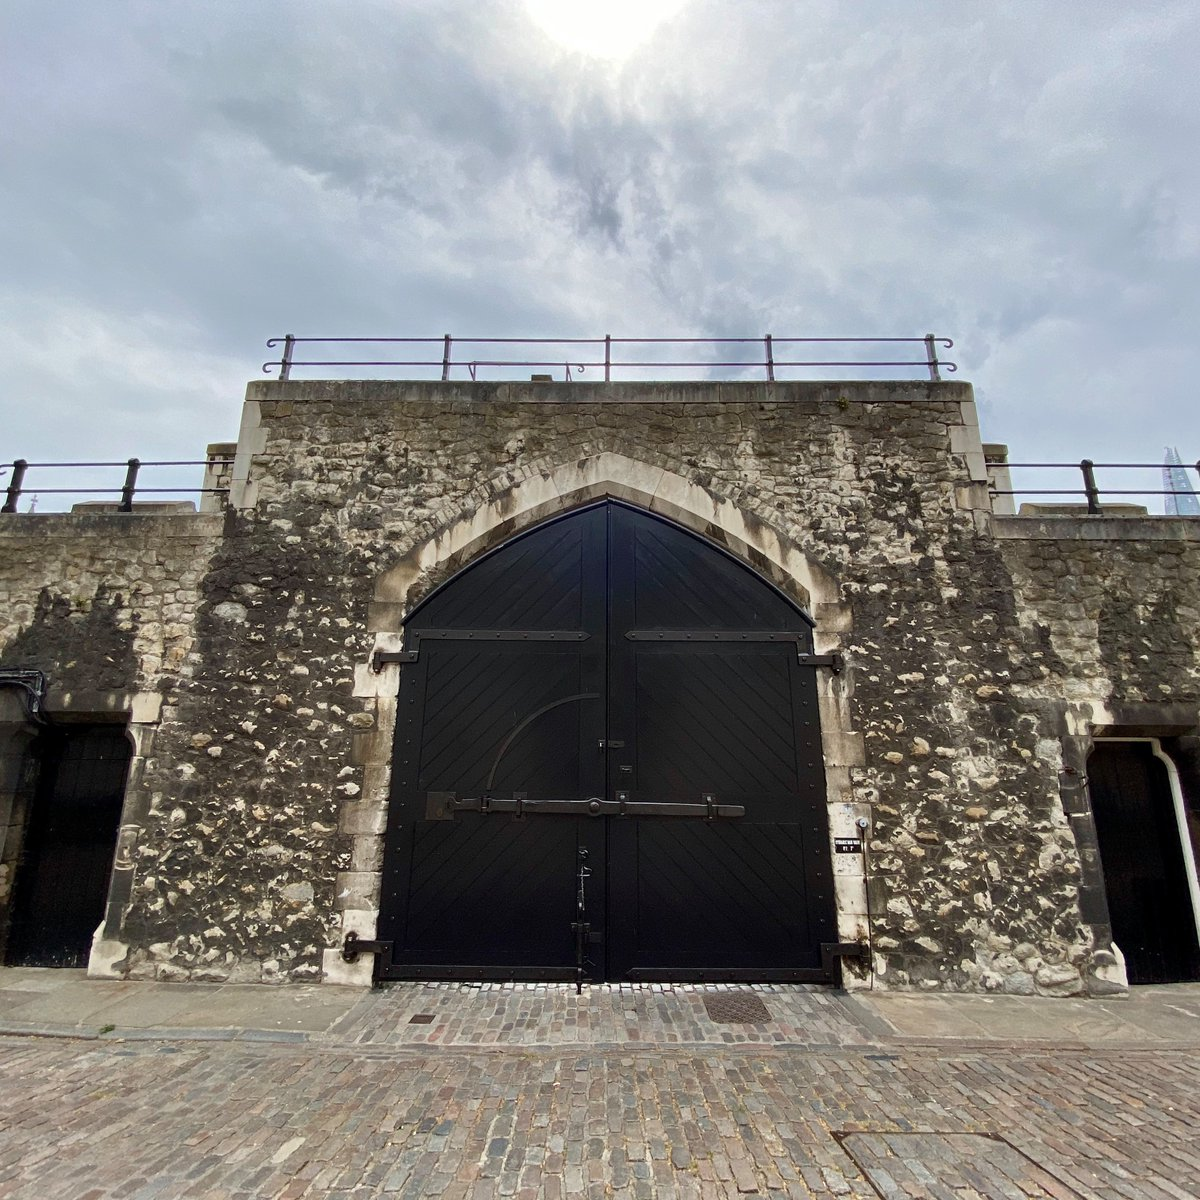 3 days to go! We are SO excited to welcome you back for a new Tower of London experience, including the Crown Jewels without the crowds. As a self-funded charity, we have never needed your support more. Find out more about visiting and book tickets here: hrp.org.uk/tower-of-london